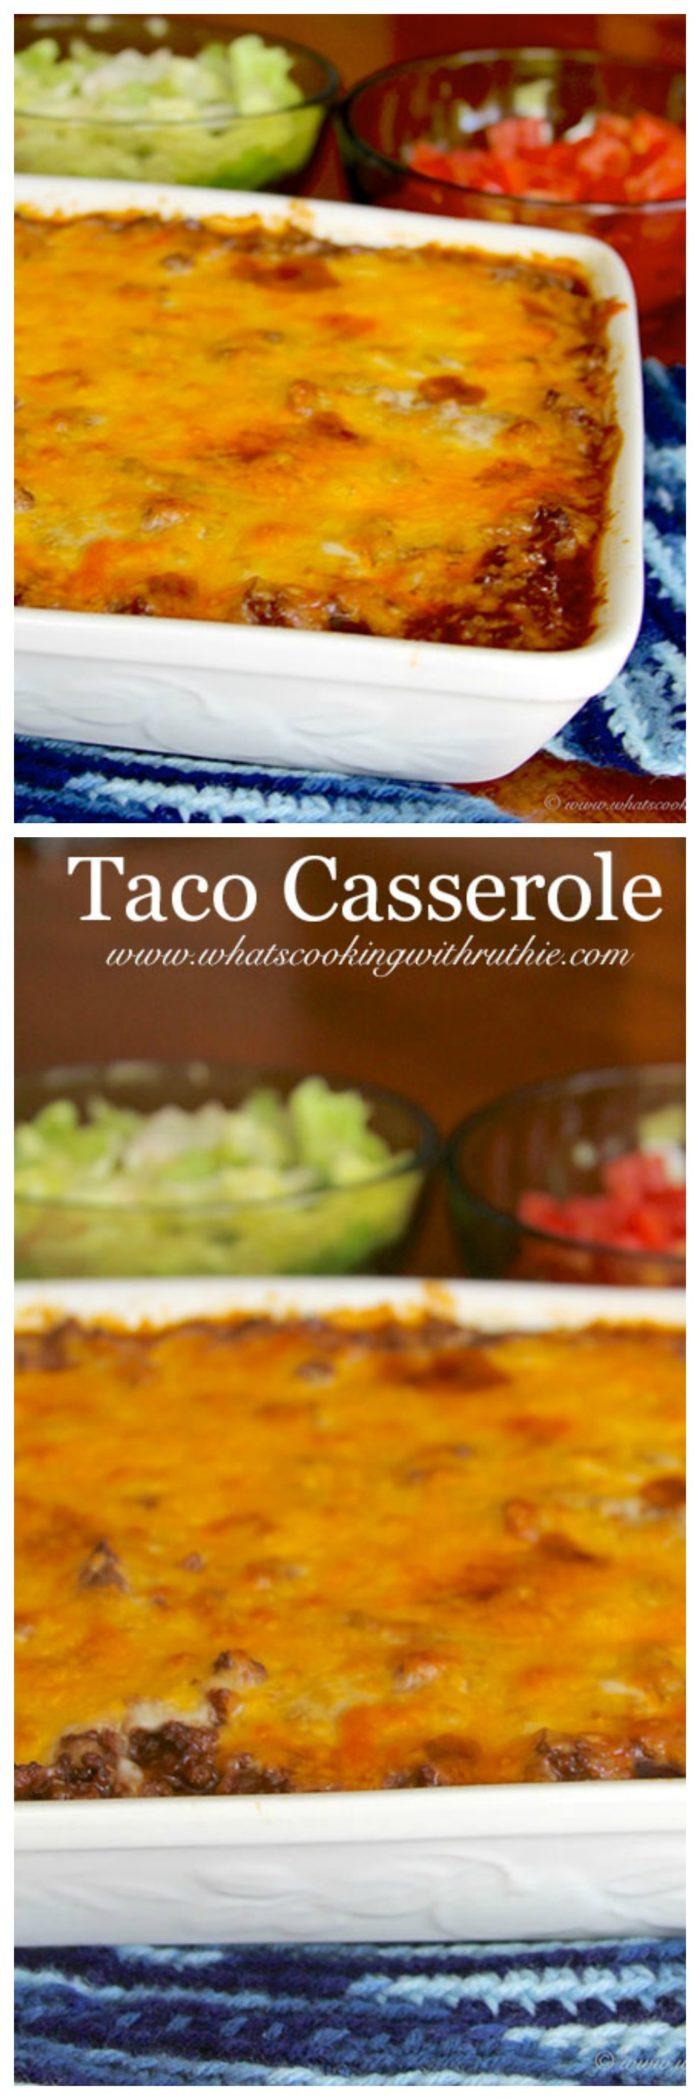 Our Taco Casserole Recipe is a great way to feed a crowd and favorite around our dinner table! by cookingwithruthie.com